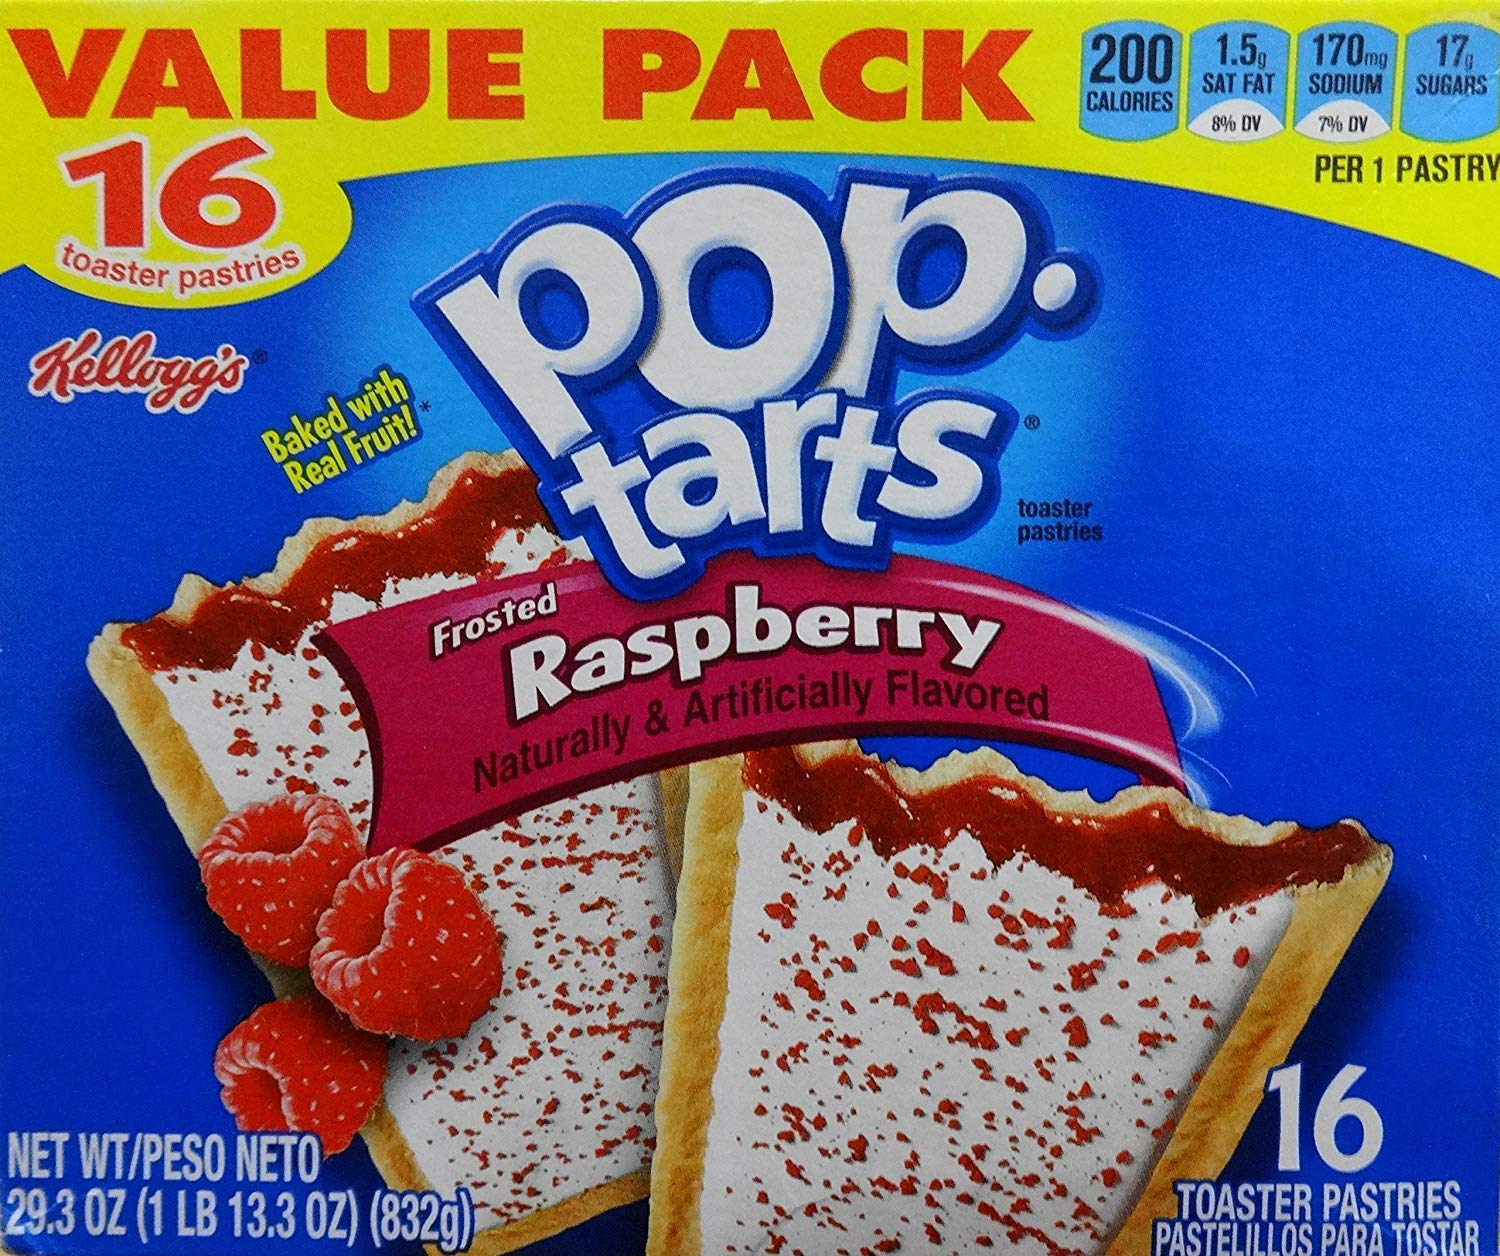 Pop Tarts Frosted Raspberry Toaster Pastries 29.3 Ounces (832g) 1 Box/16 Pastries